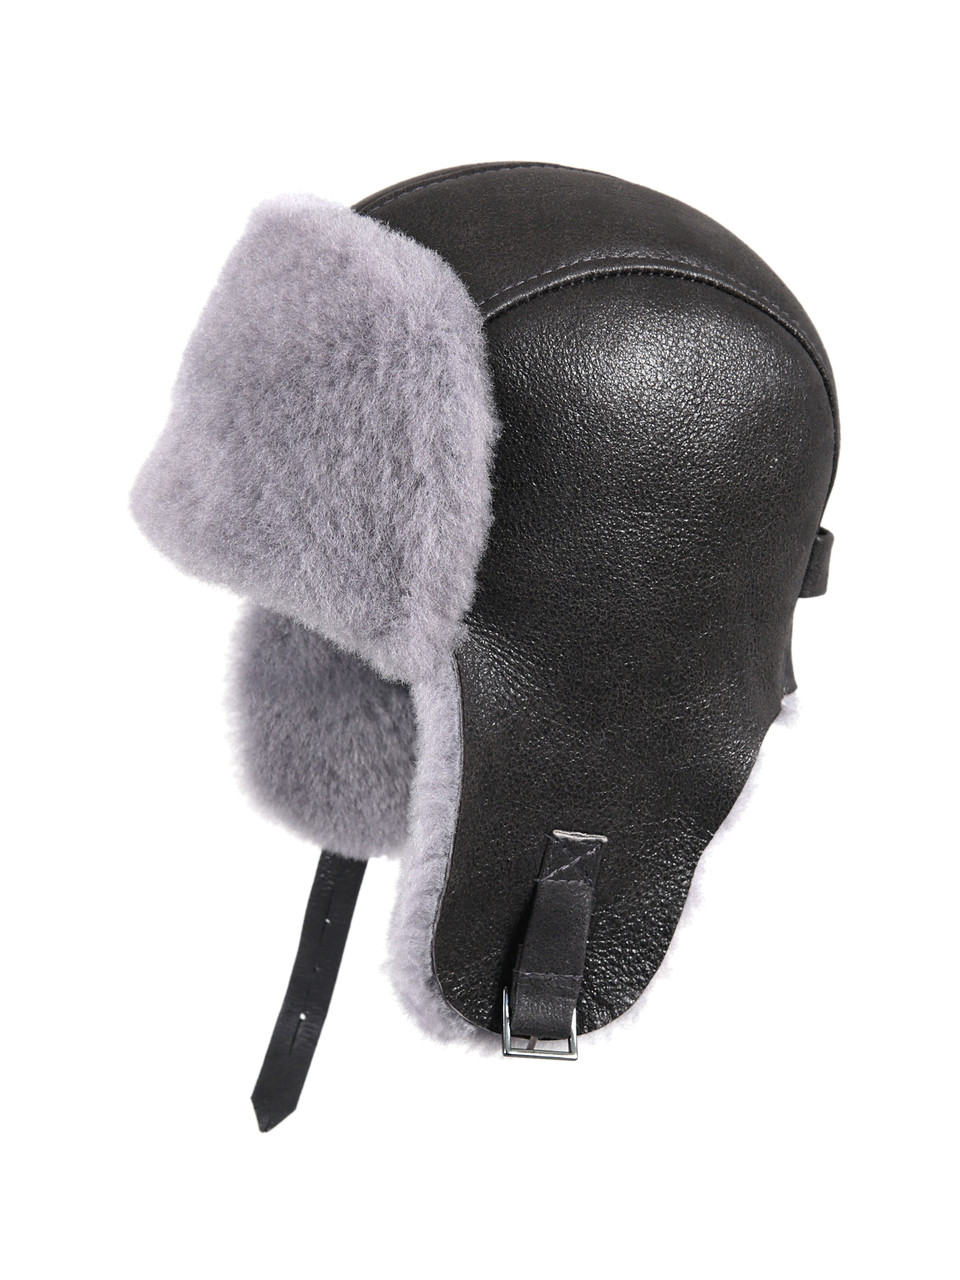 7b531b2b66df5 ... Shearling Sheepskin Pilot Winter Fur Hat - Antrasit. Image 1. Loading  zoom